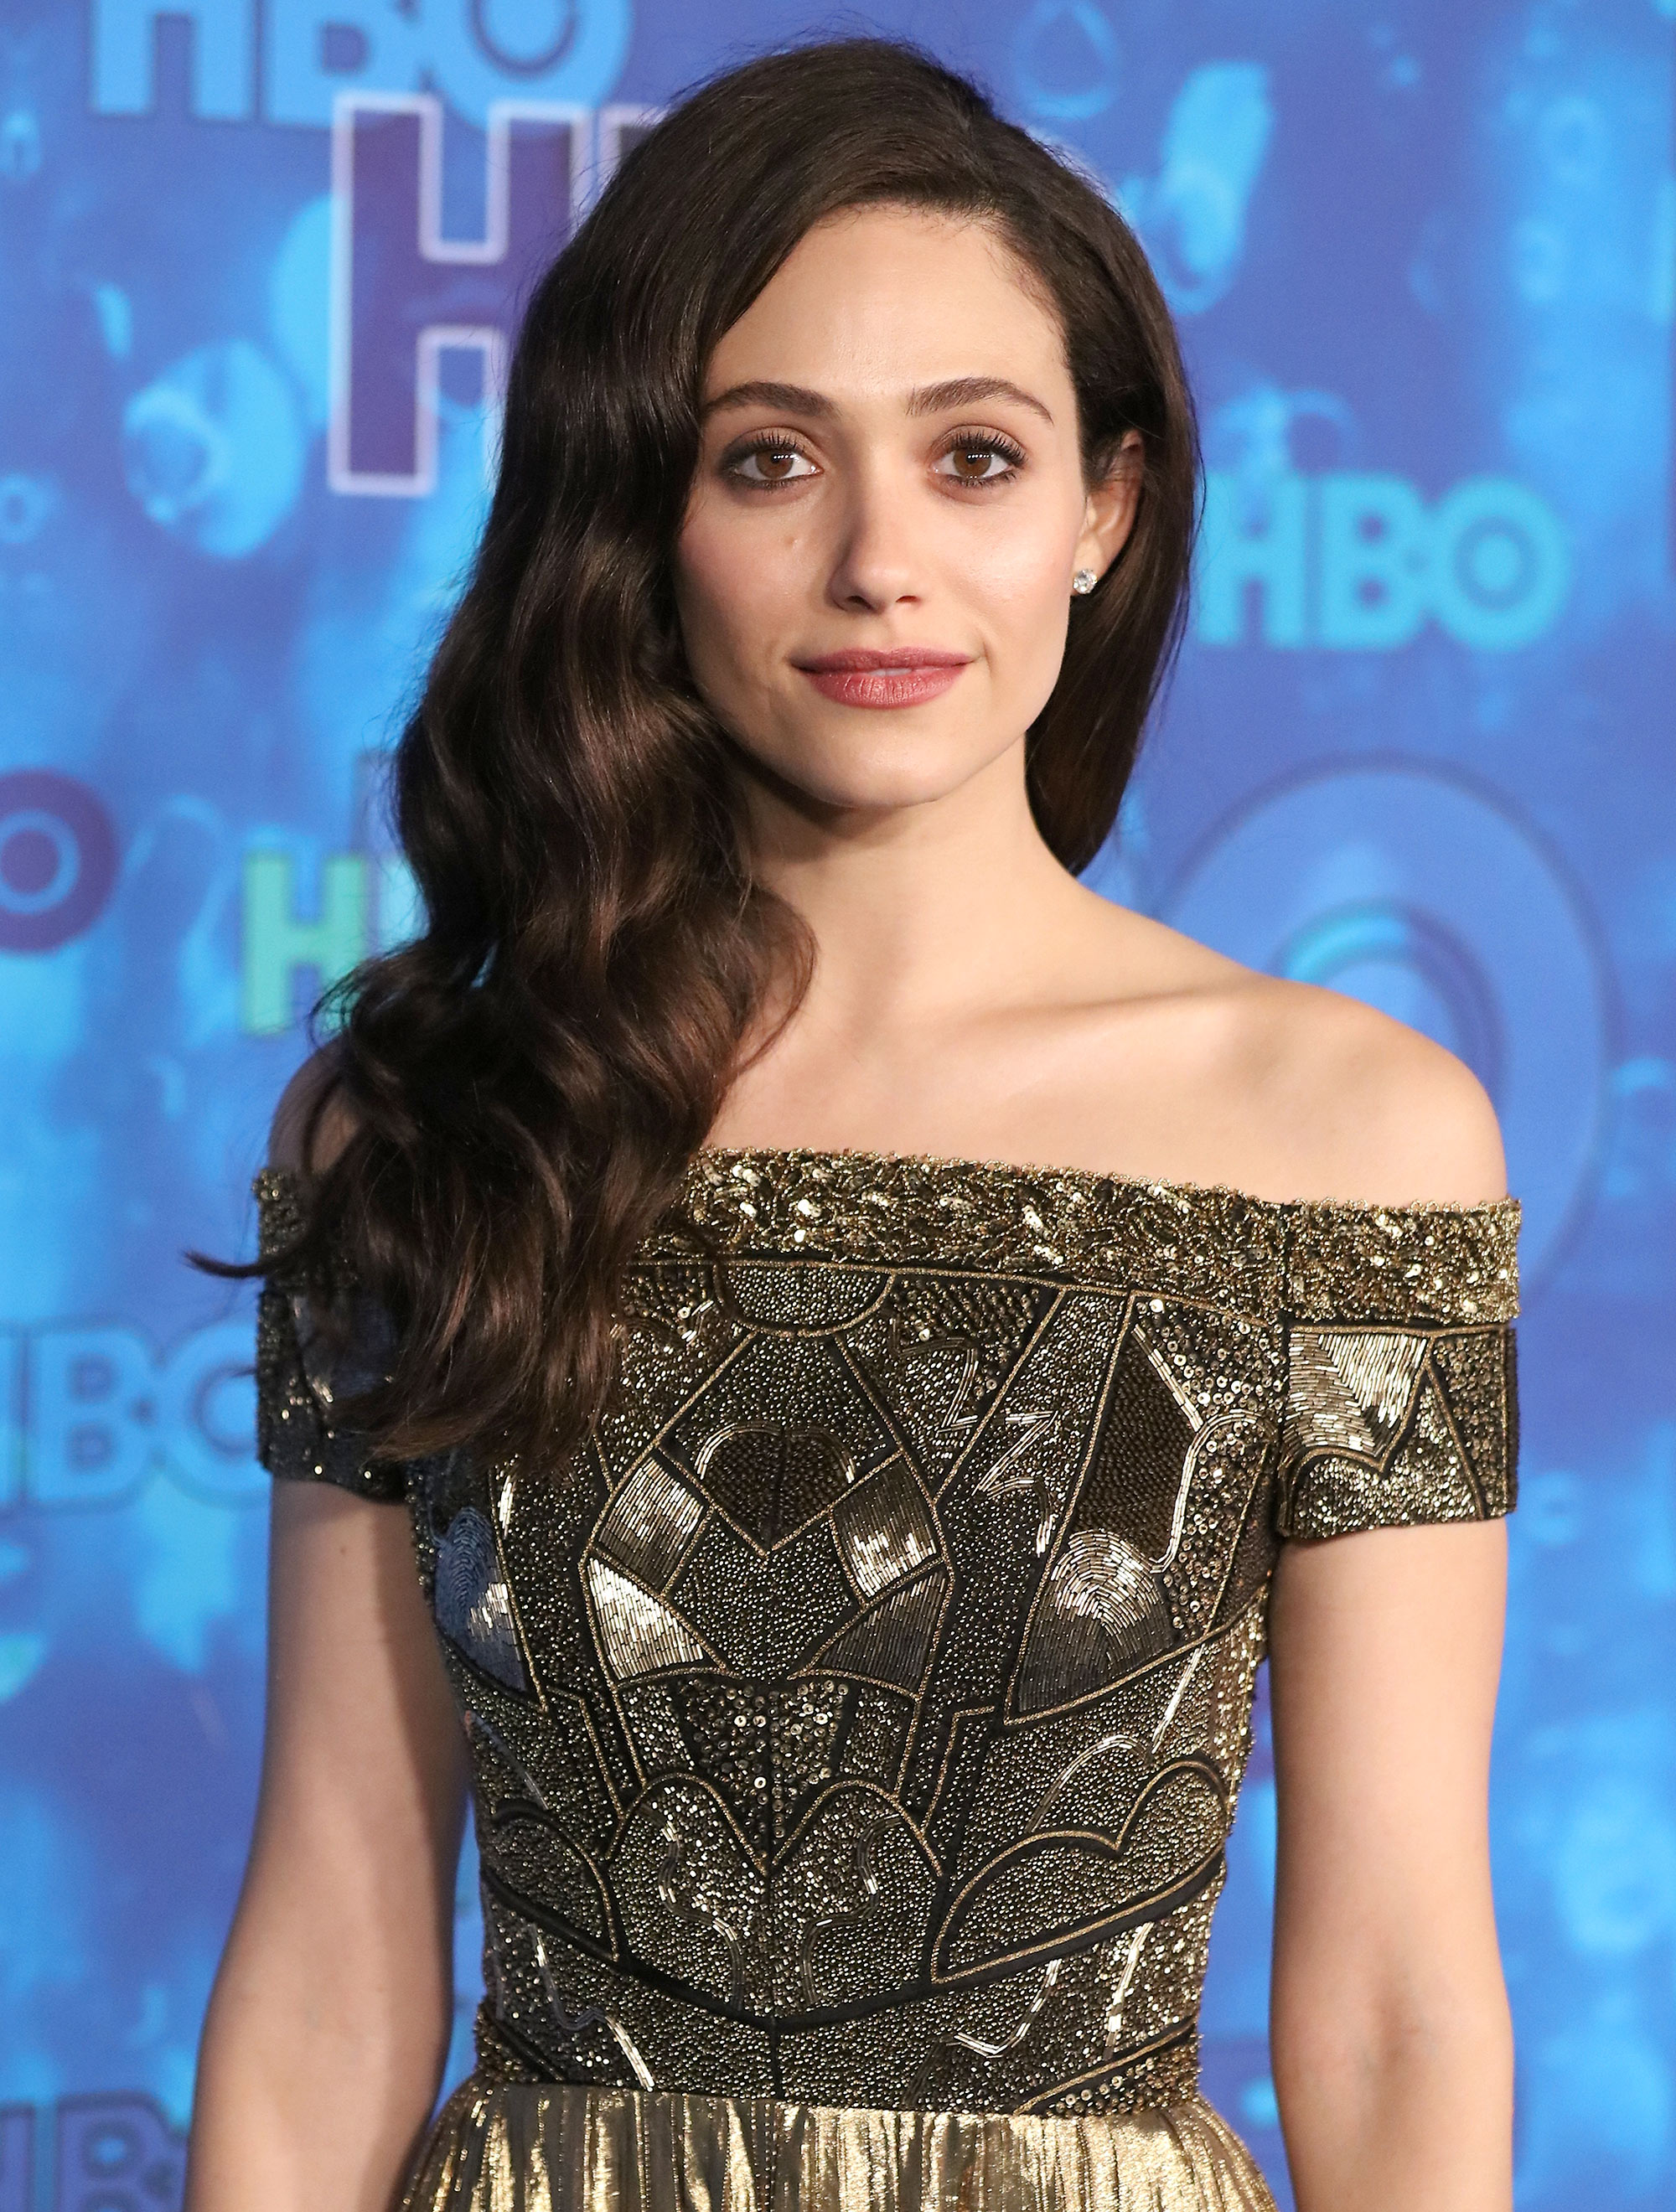 Emmy Rossum Opens Up About Sexist Male Director | PEOPLE.com ...